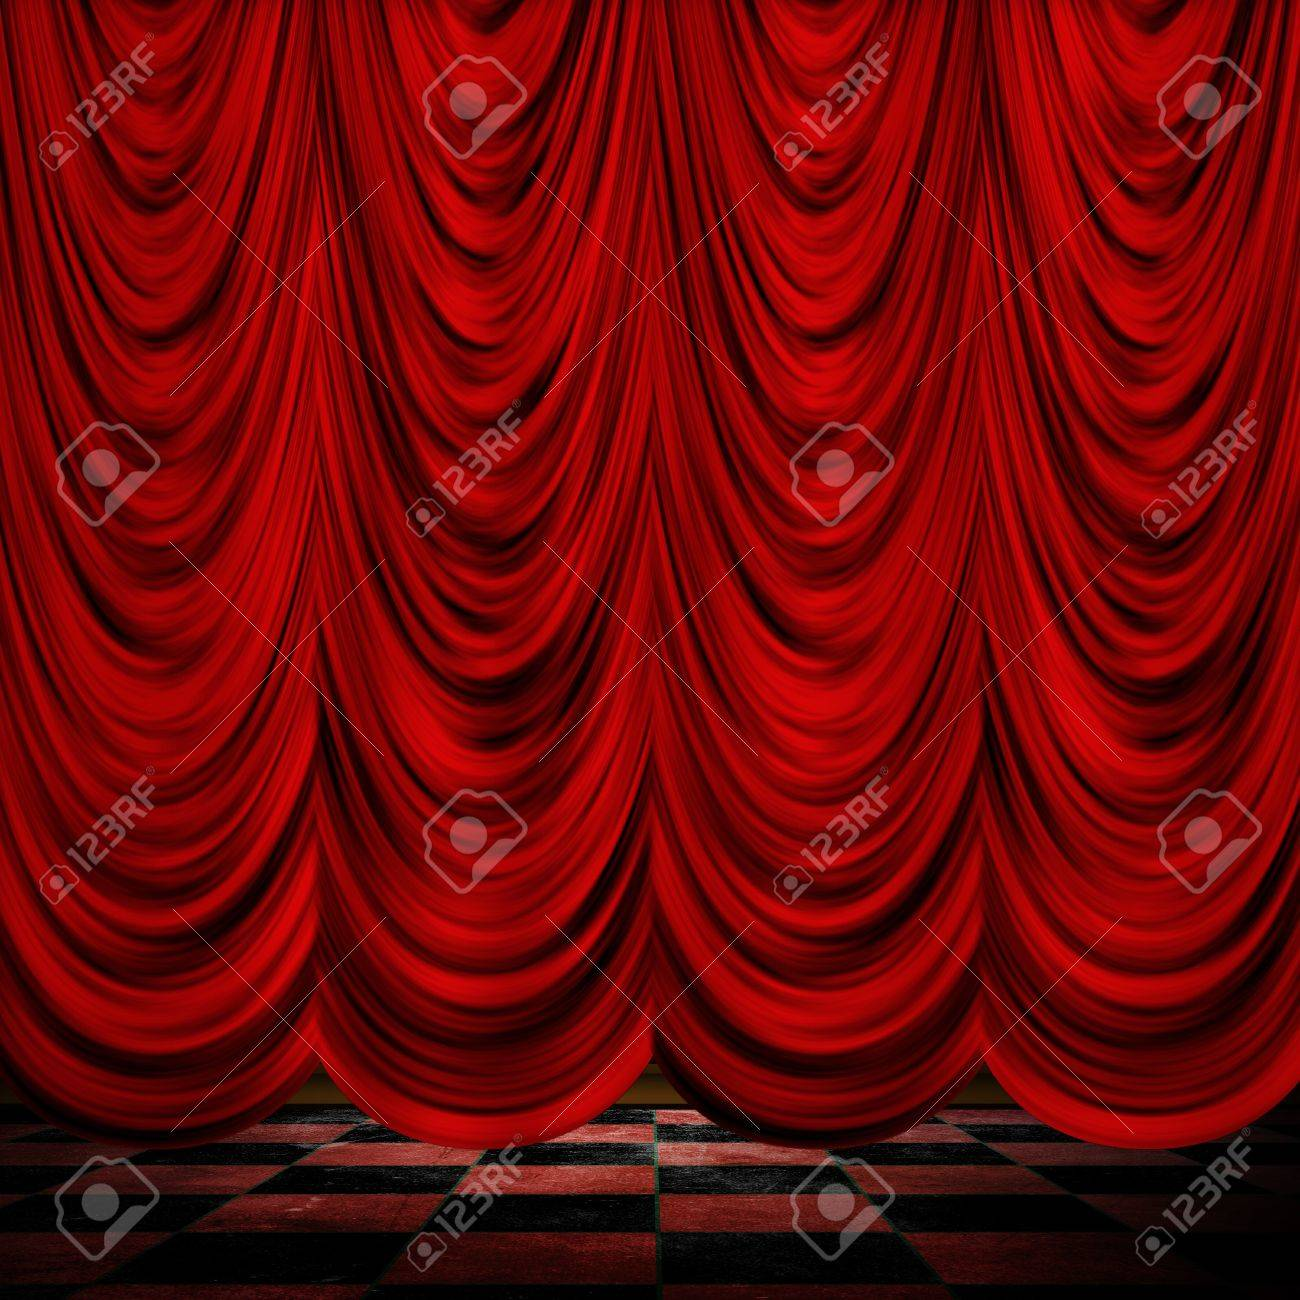 Closed theater curtains - Close View Of Decorative Red Theater Stage Curtains With Checkered Floor Stock Photo 18160917